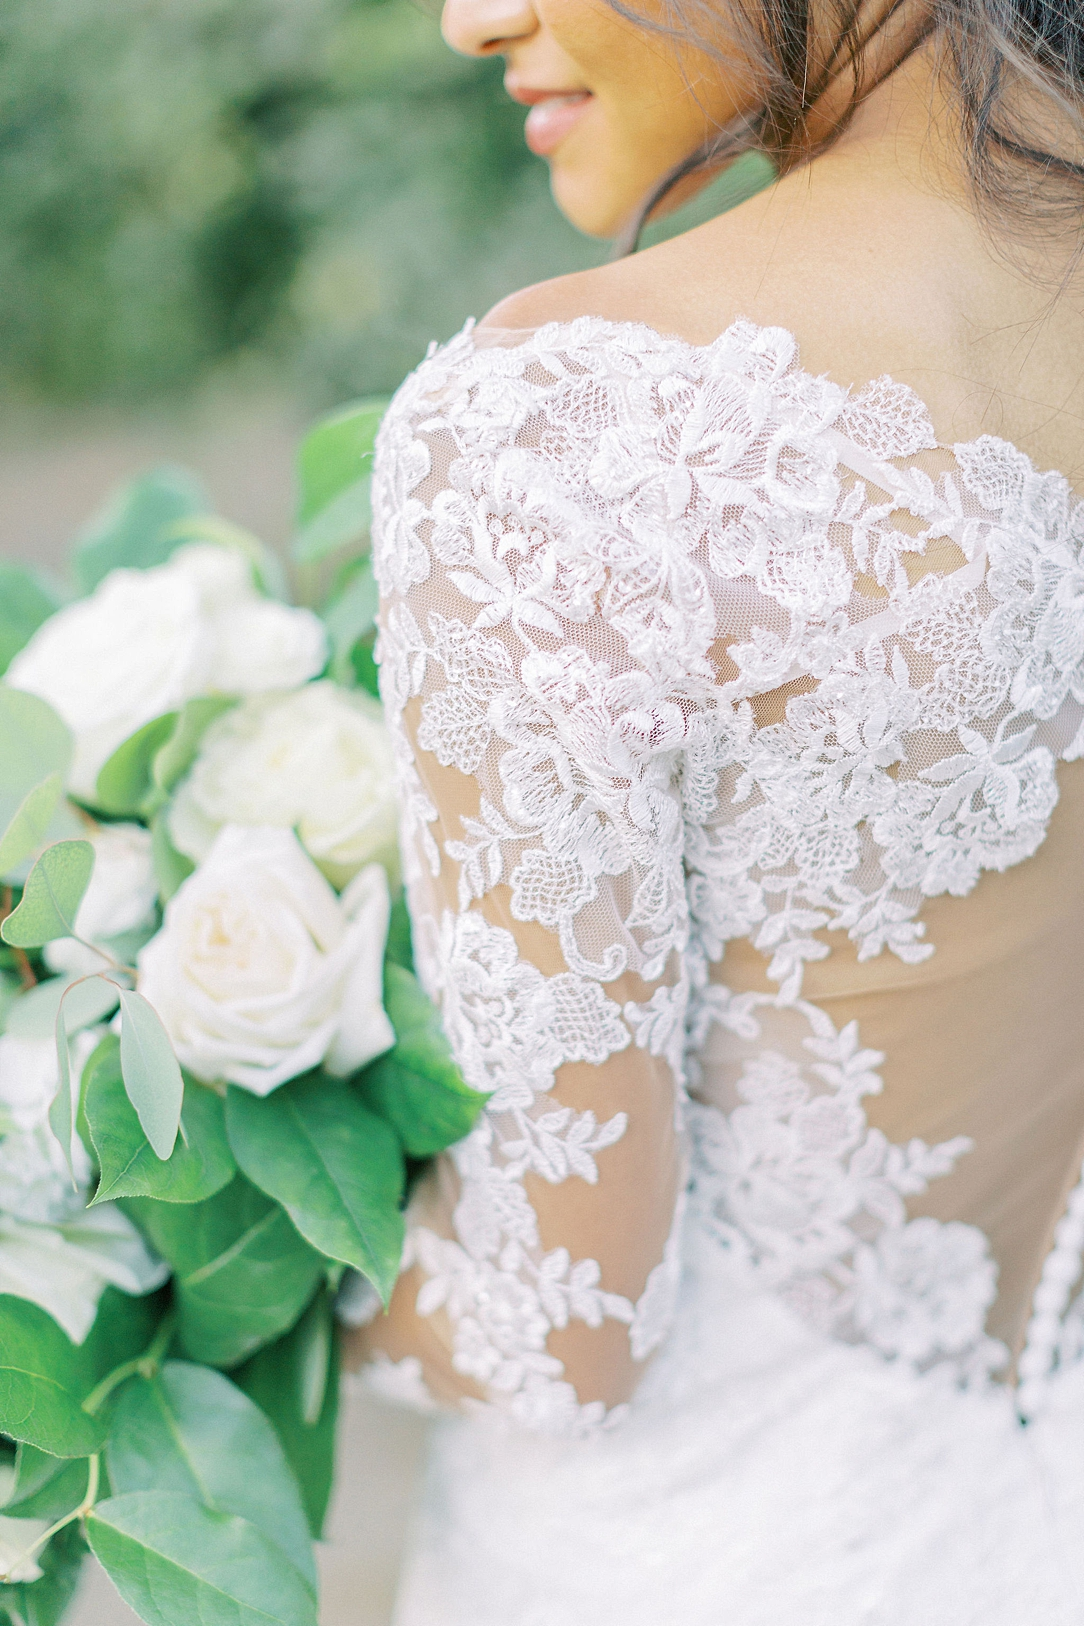 An Organic Floral Inspired Summer Wedding in the gardens of Hartley Botanica Somis by Wedding Photographer Madison Ellis (34)